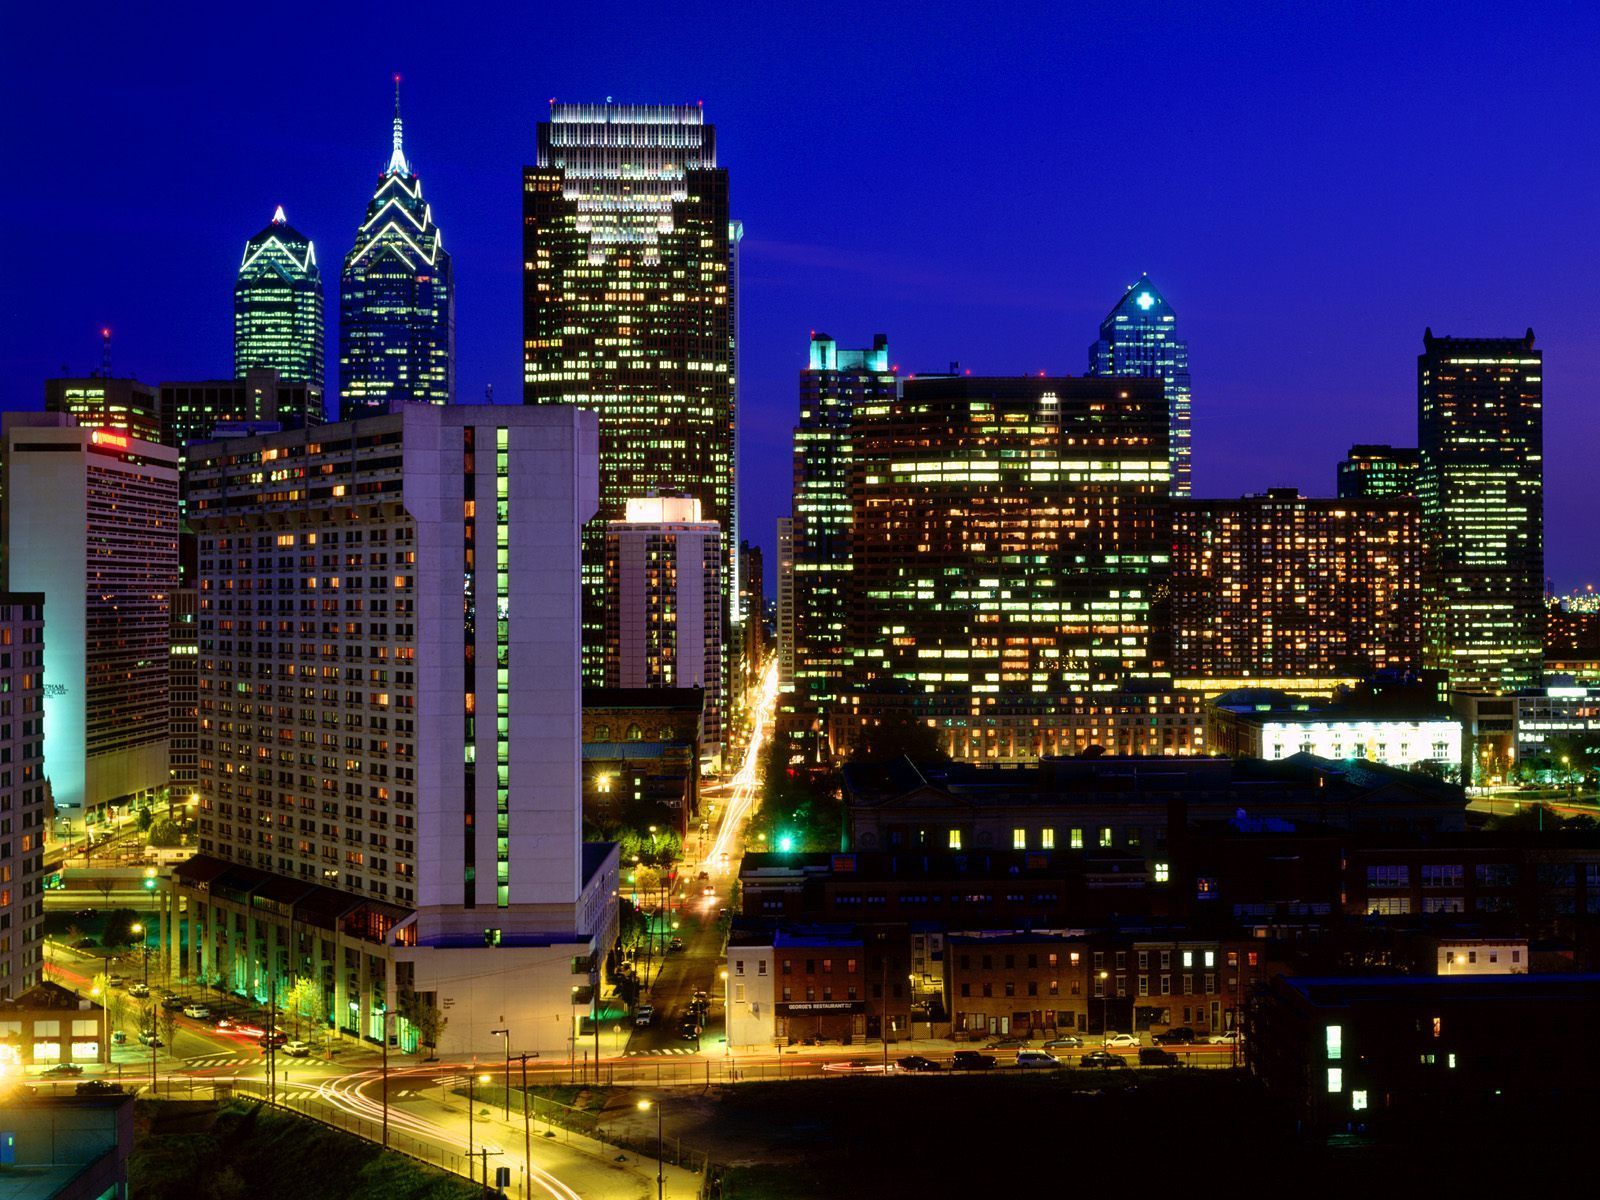 mobile philadelphia wallpapers | download wallpaper | pinterest